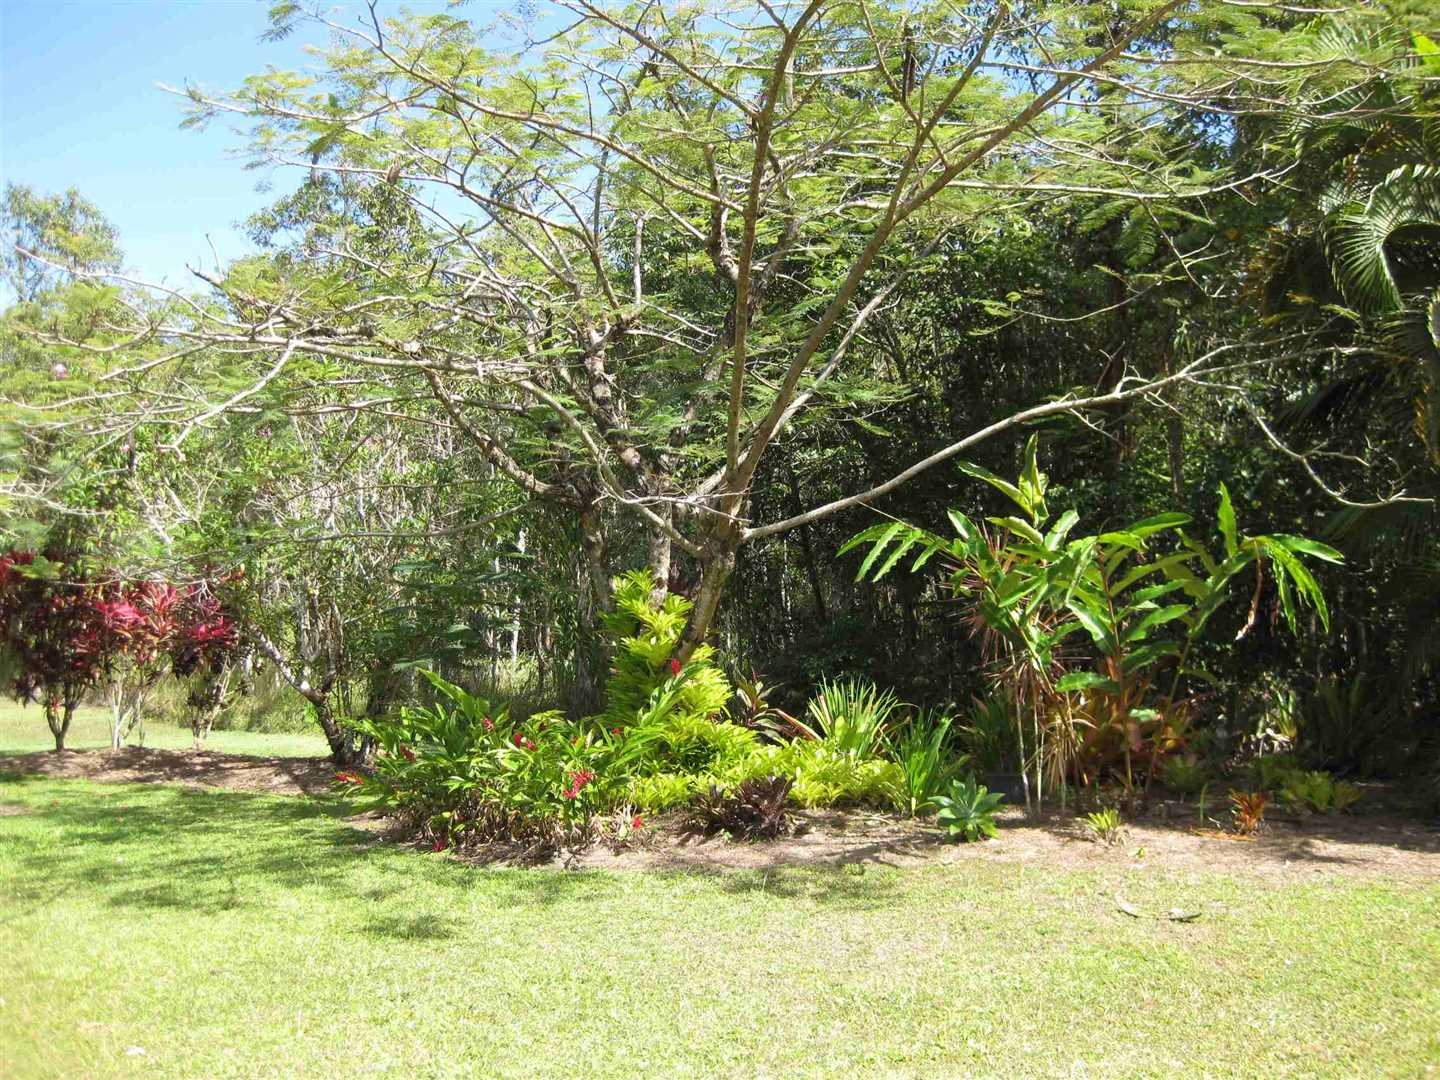 View of part of garden area, photo 6